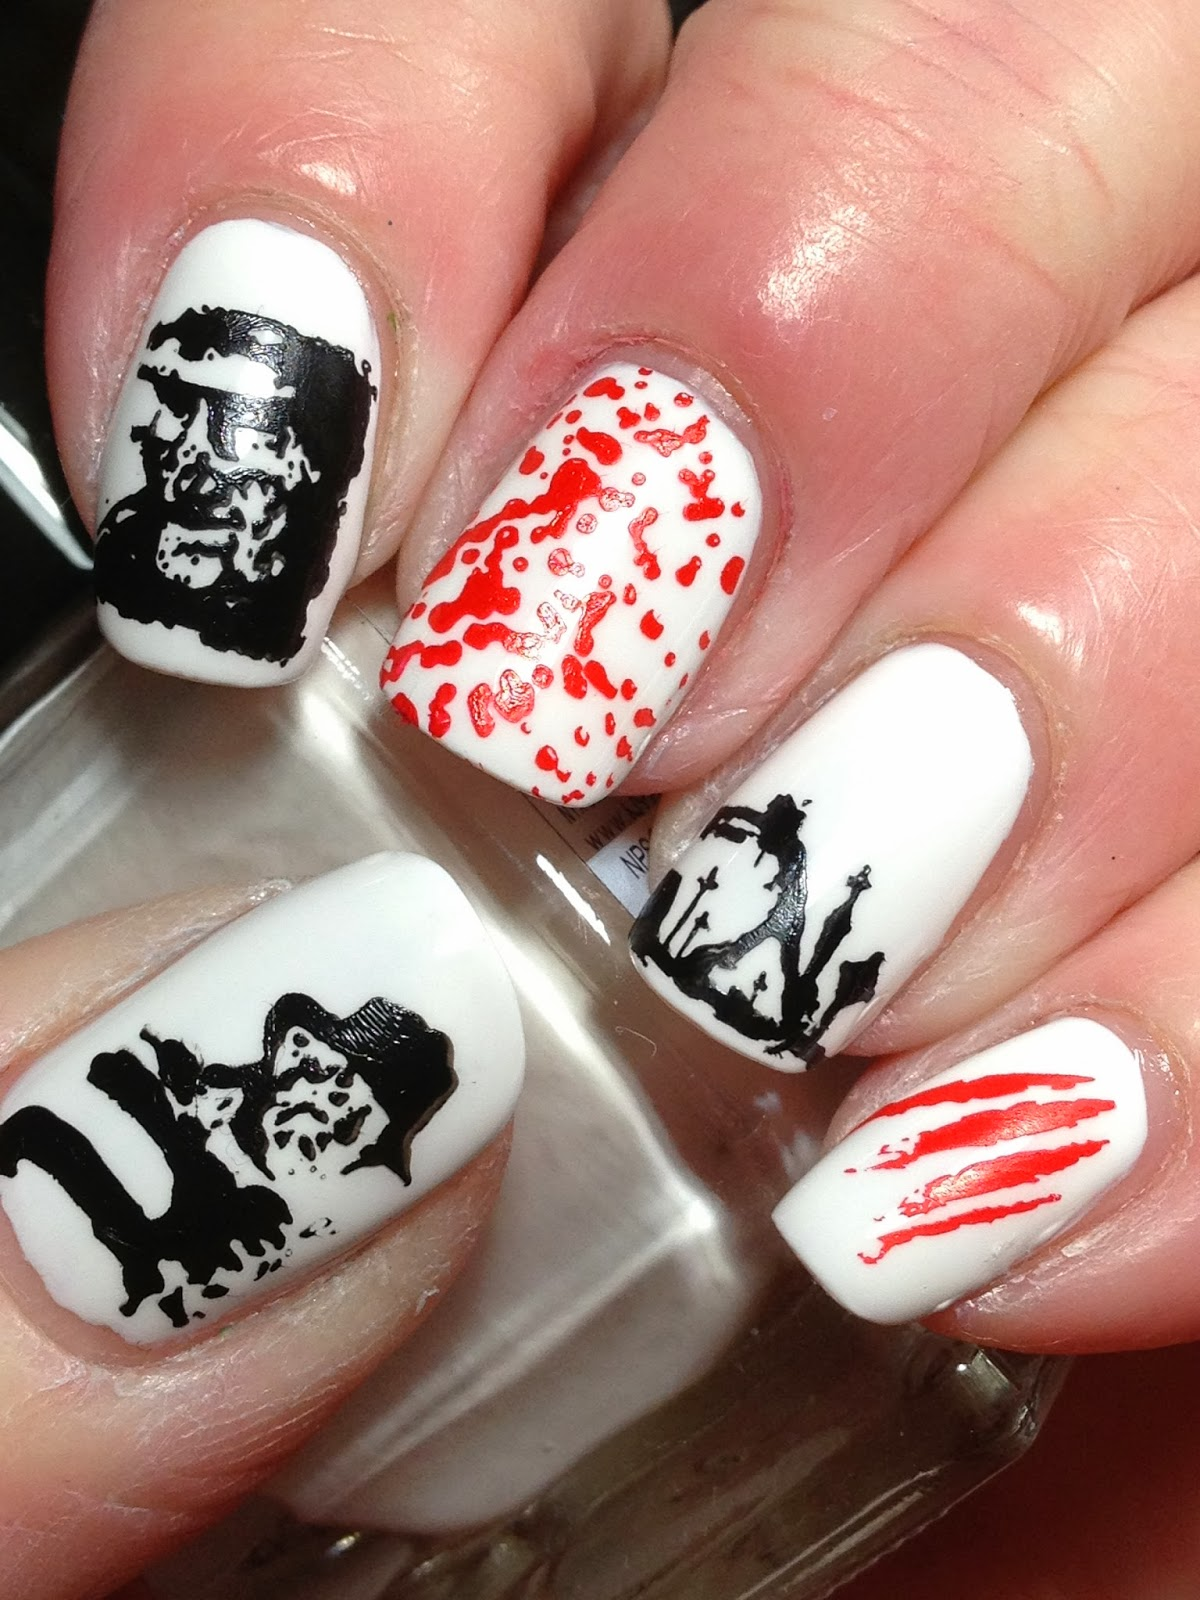 Canadian Nail Fanatic: Freddy Krueger (and Vote Over at Harlow & Co!)